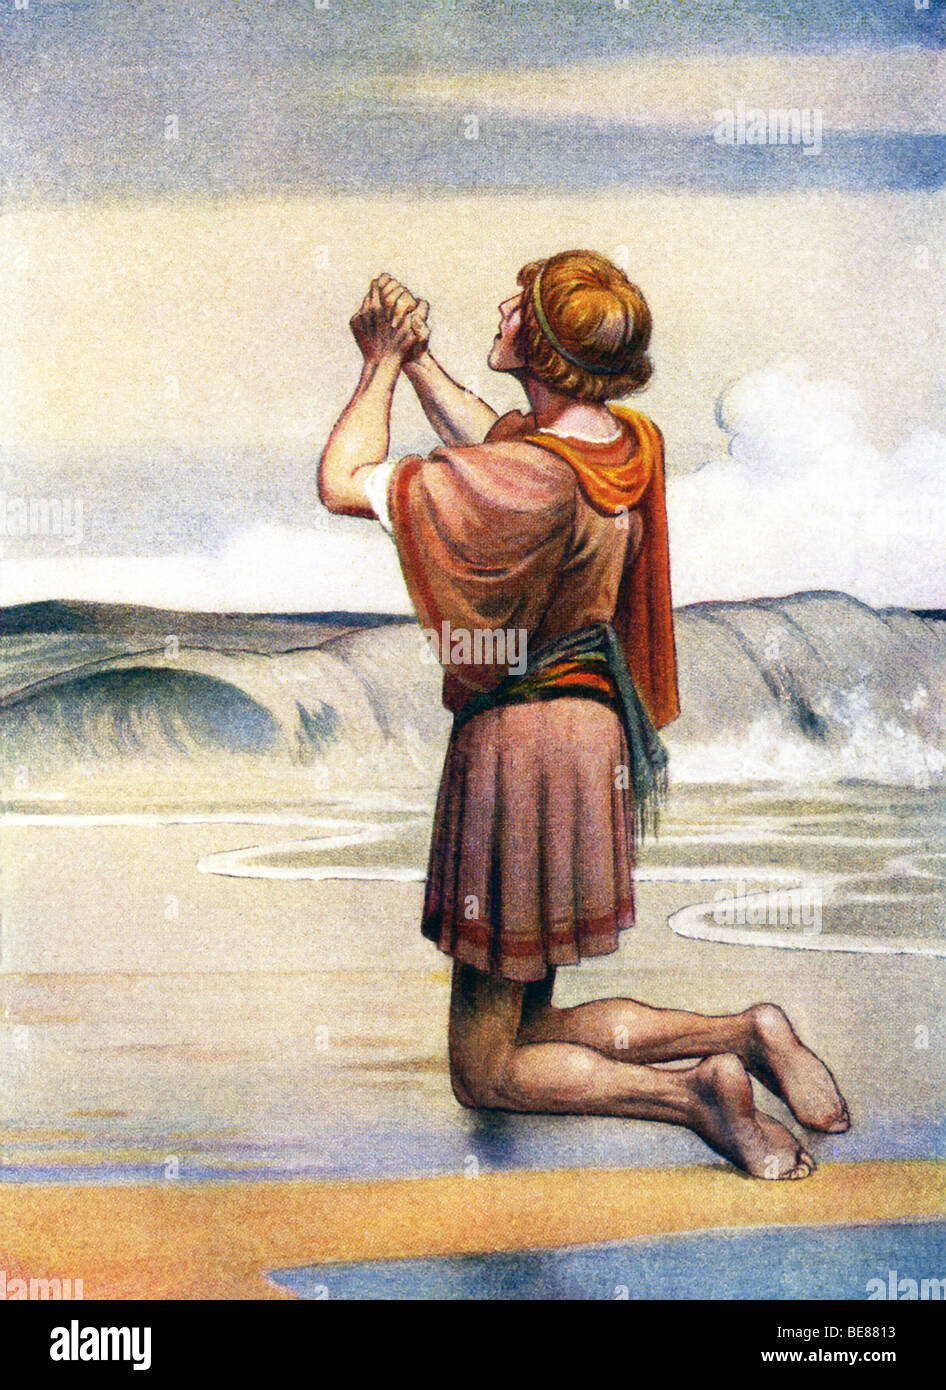 In the Odyssey, Telamachus knelt where the water broke on land and asked the gods for help finding his father, Odysseus. - Stock Image